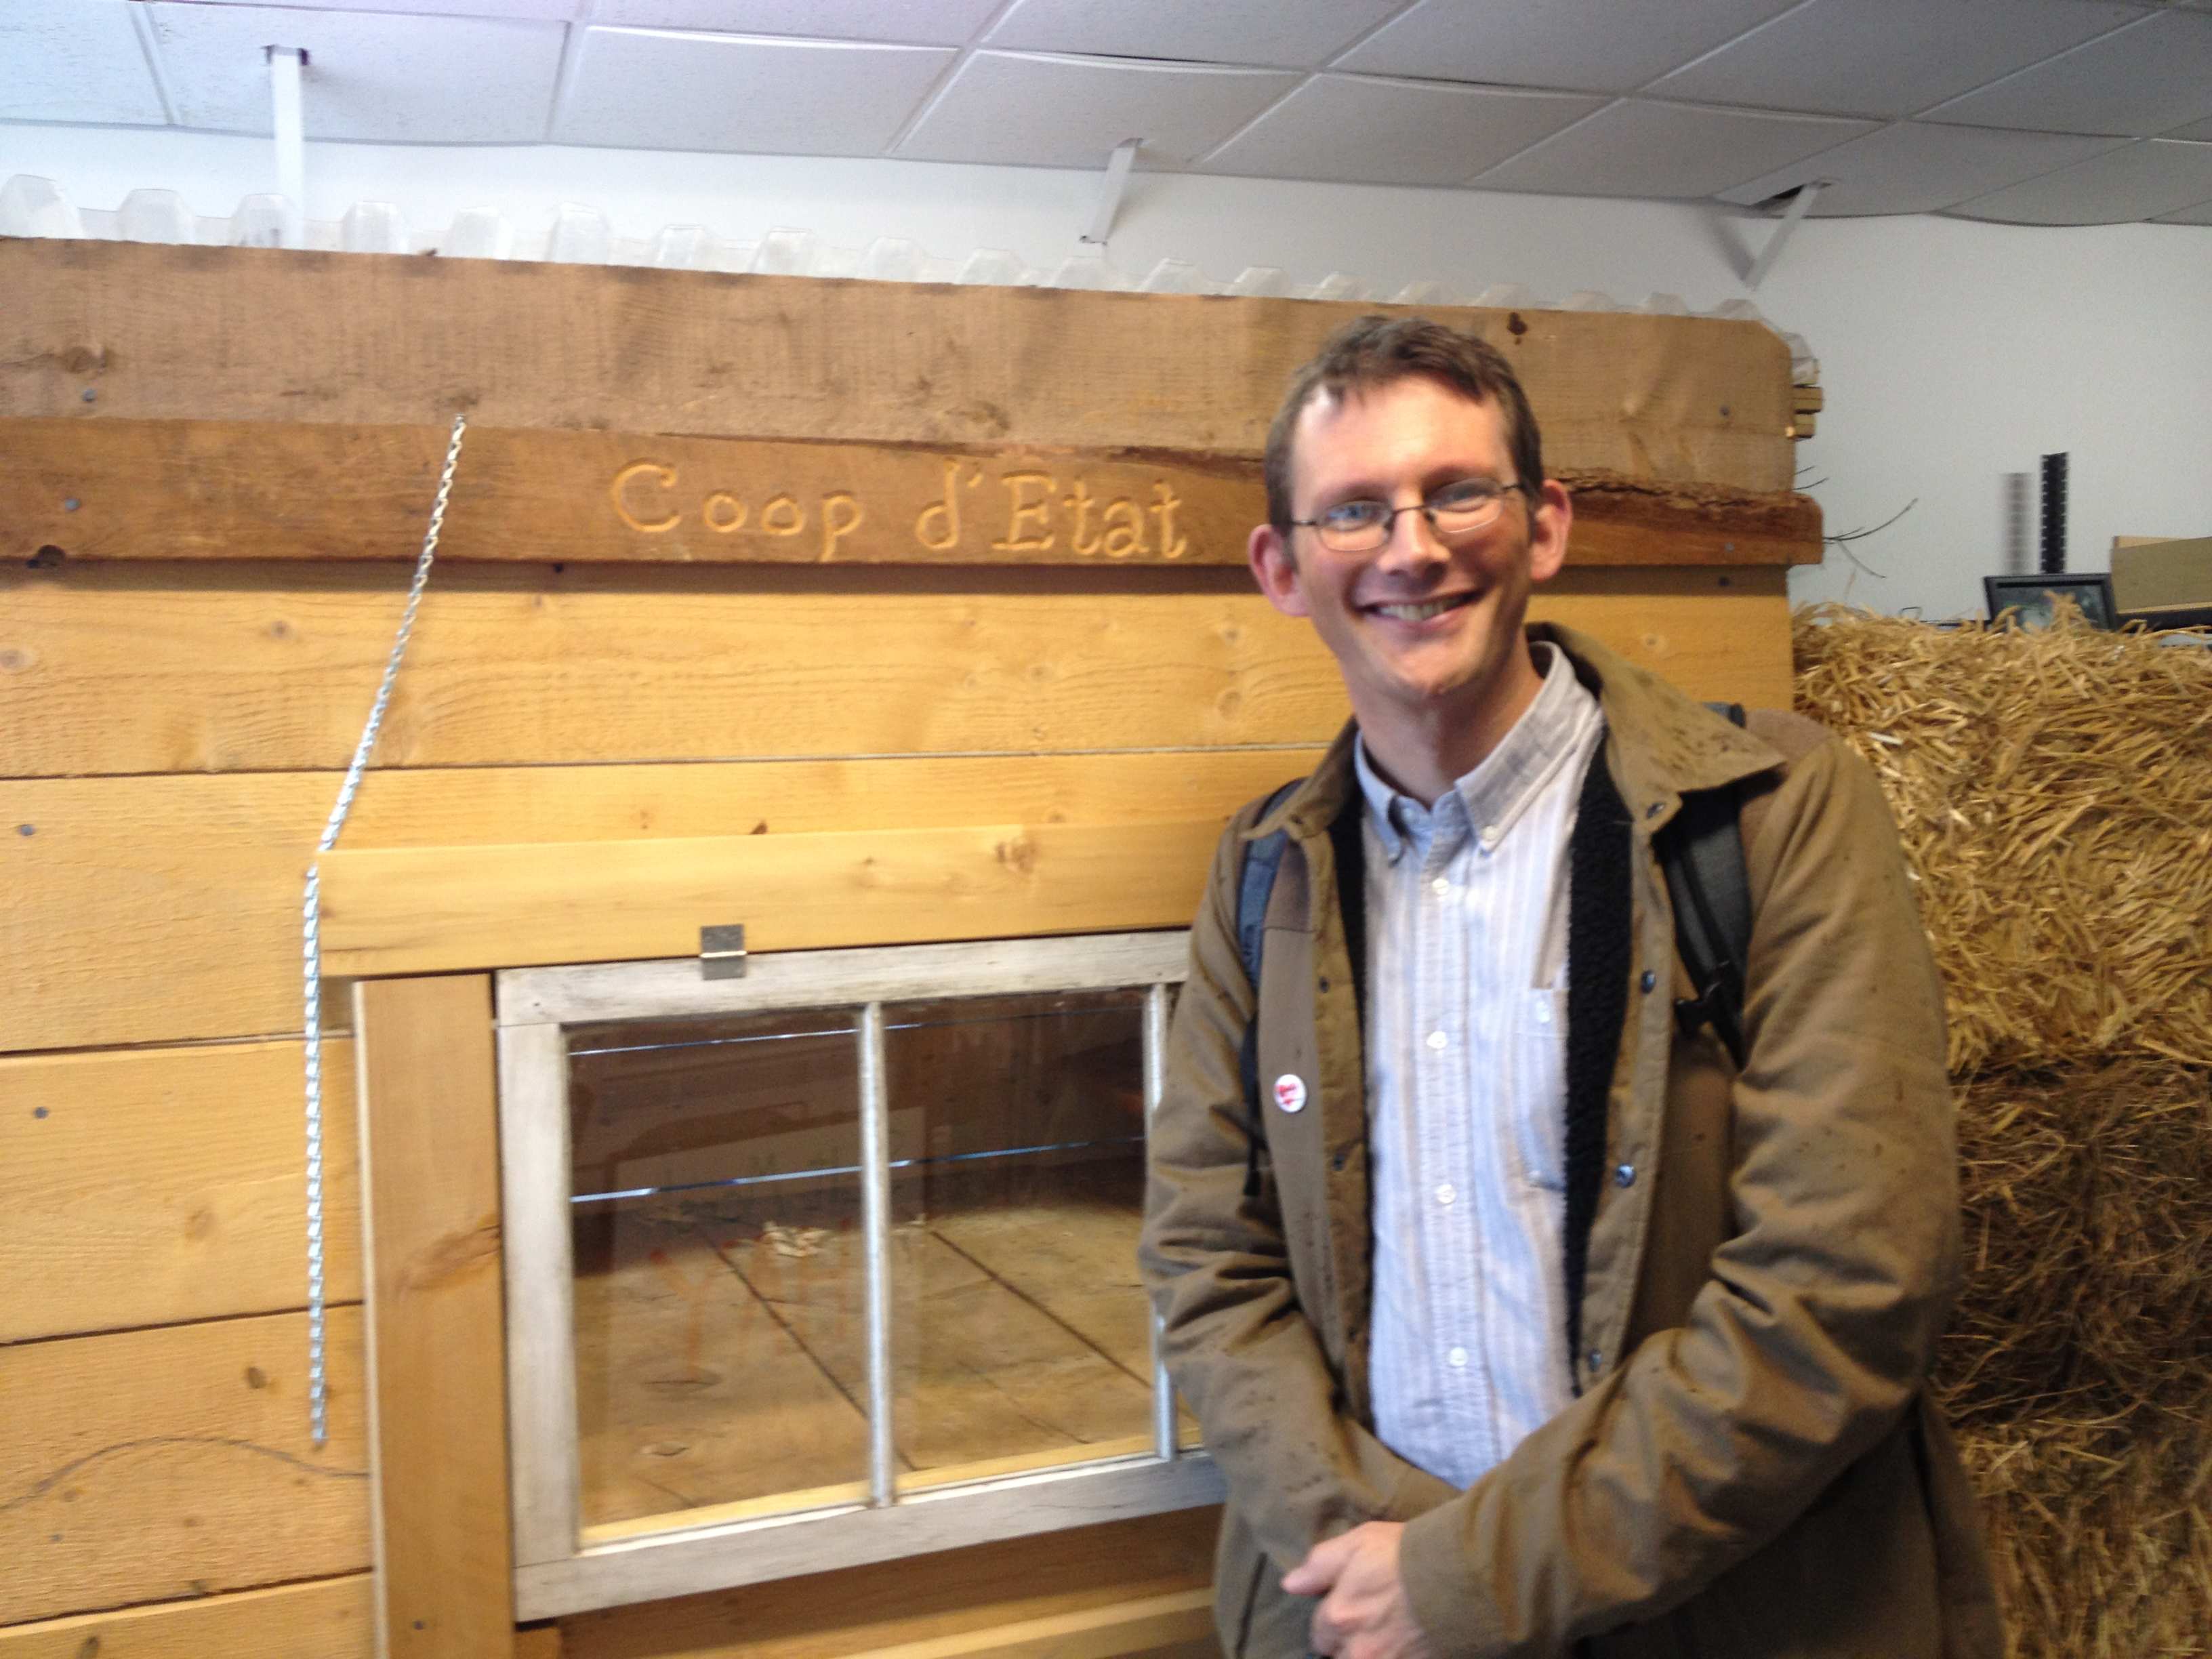 Rob Visits JP's Agricultural Hall